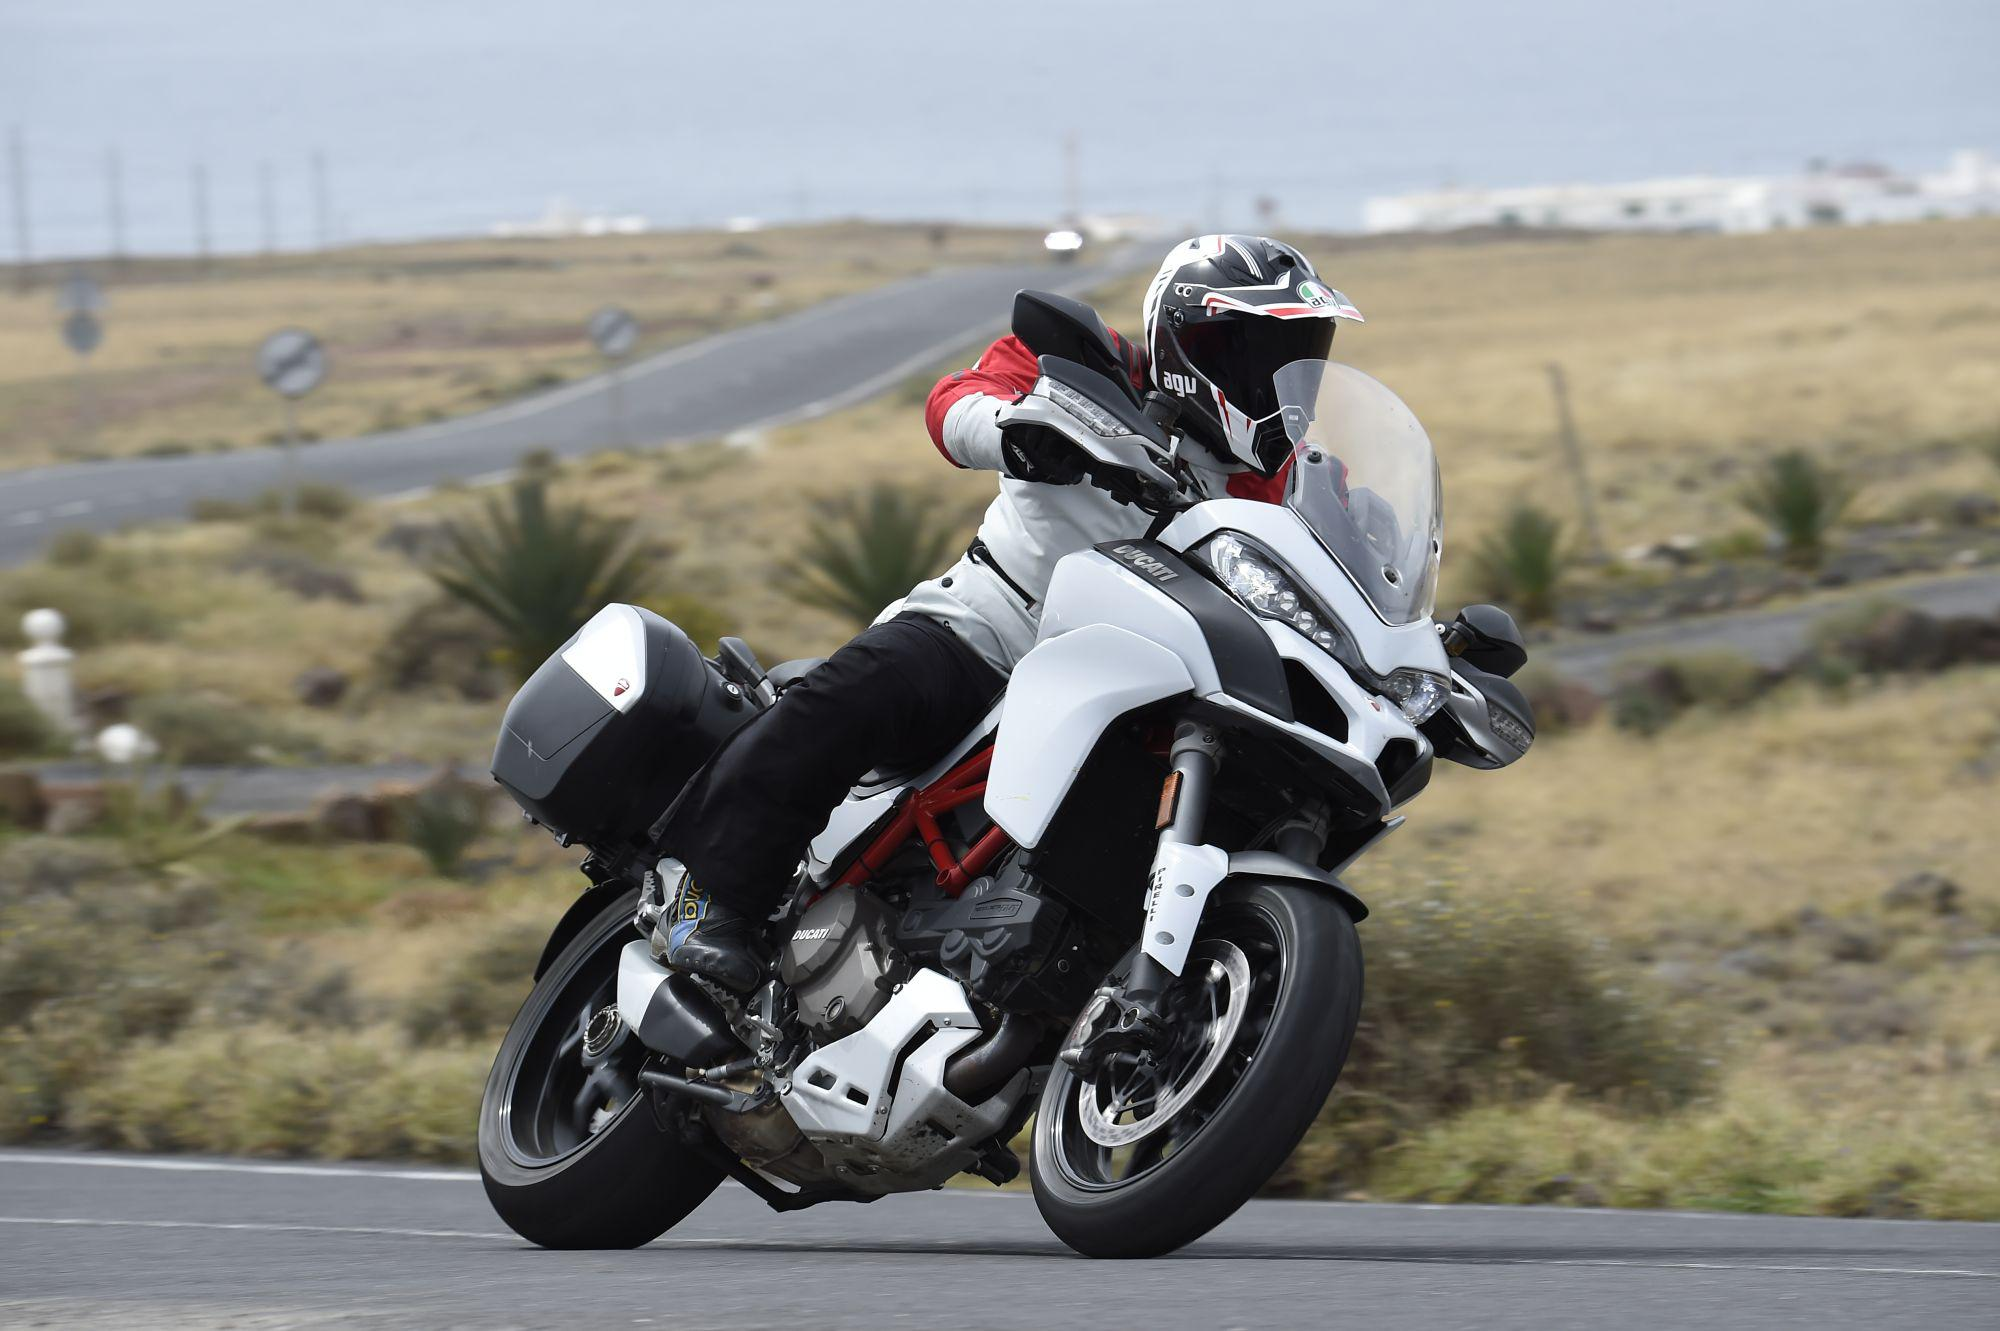 ducati multistrada 1200 s test 2015. Black Bedroom Furniture Sets. Home Design Ideas